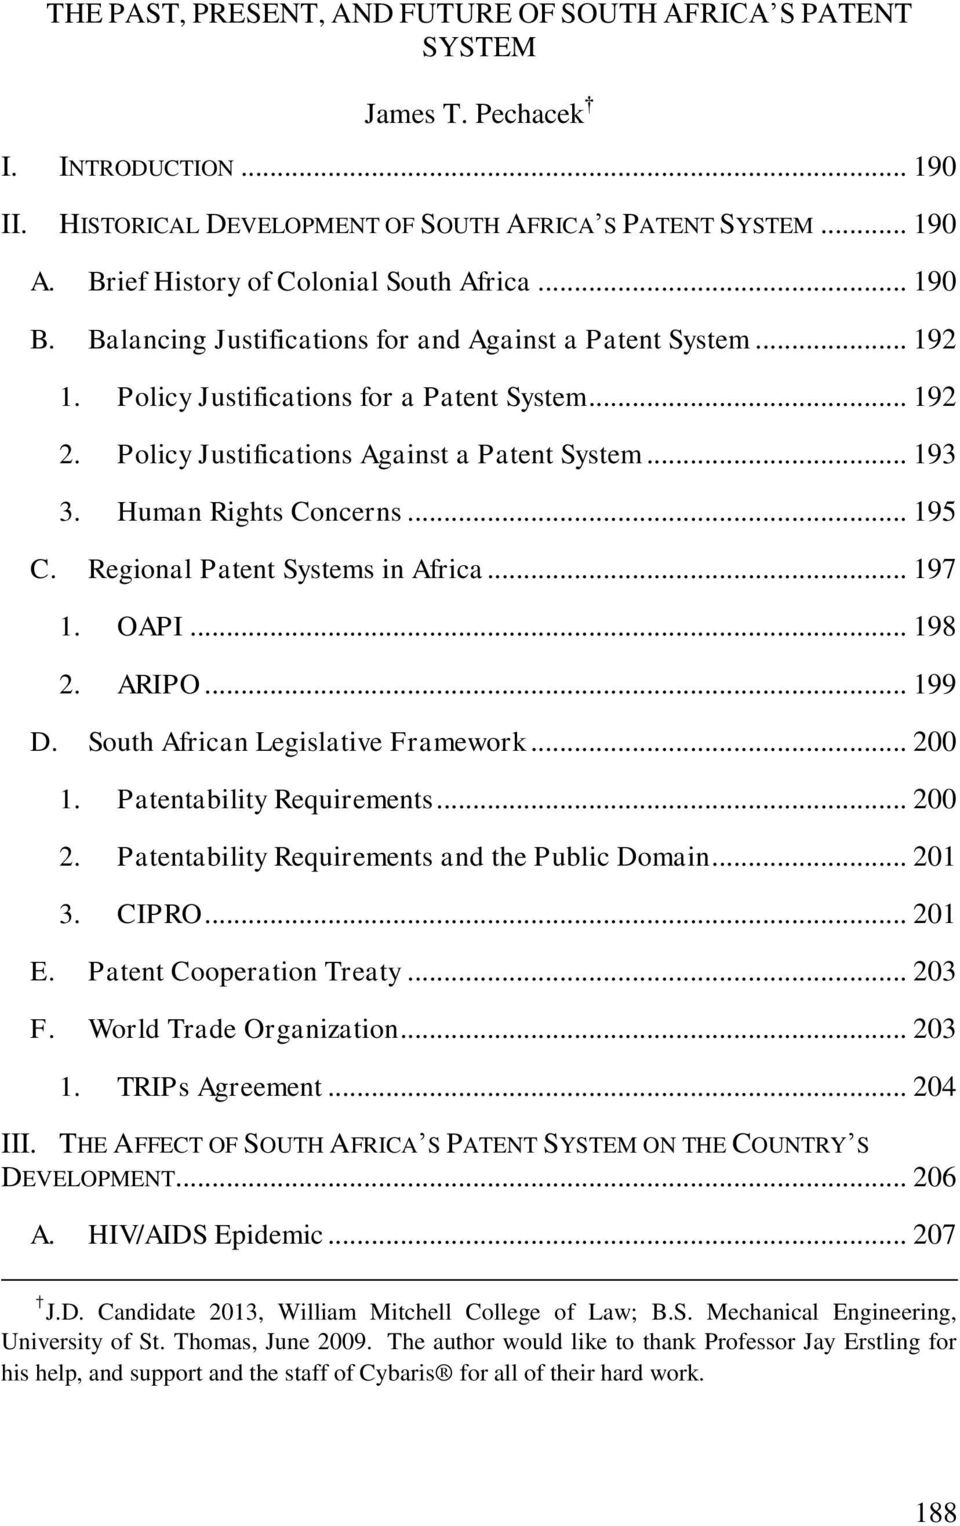 Policy Justifications Against a Patent System... 193 3. Human Rights Concerns... 195 C. Regional Patent Systems in Africa... 197 1. OAPI... 198 2. ARIPO... 199 D. South African Legislative Framework.